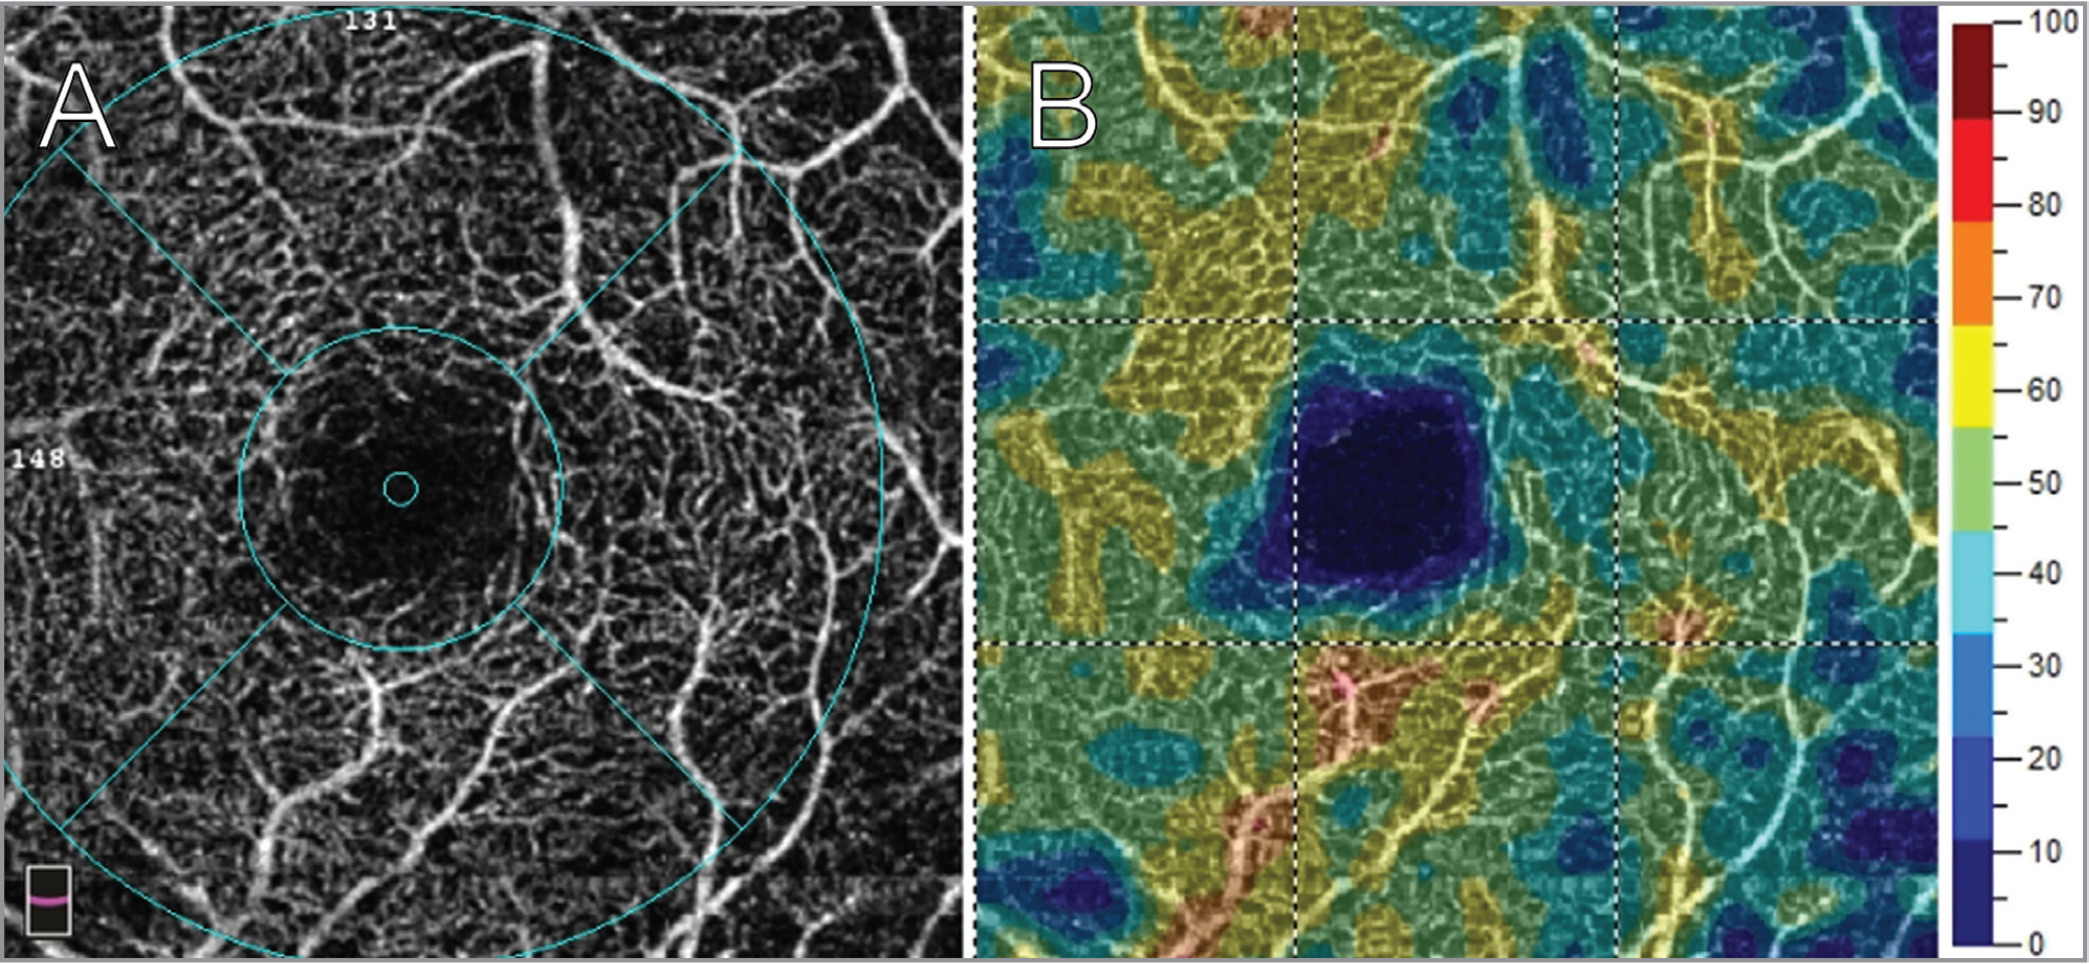 (A) 3 mm × 3 mm optical coherence tomography angiography image of the left macular deep capillary plexus in a patient with retinitis pigmentosa. (B) Vessel density map indicating percentage density of blood vessels. Parafoveal capillary perfusion density was measured at 51.86%.